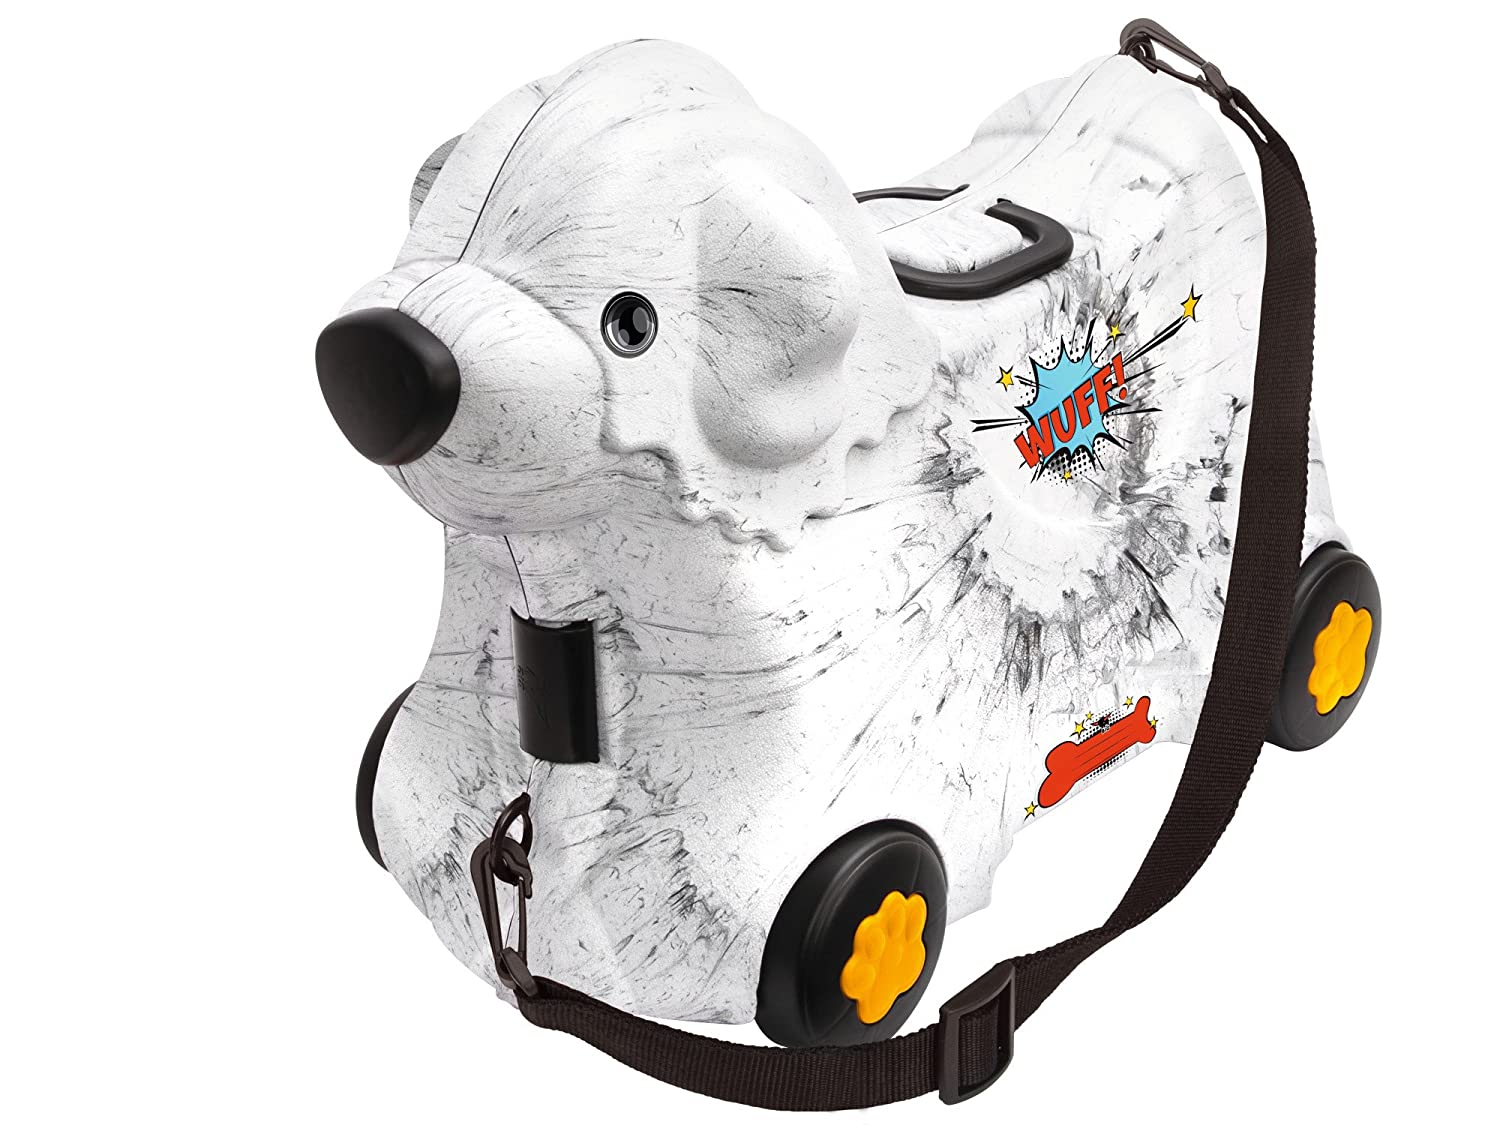 BIG Bobby Trolley Marble - Trunki Alternative